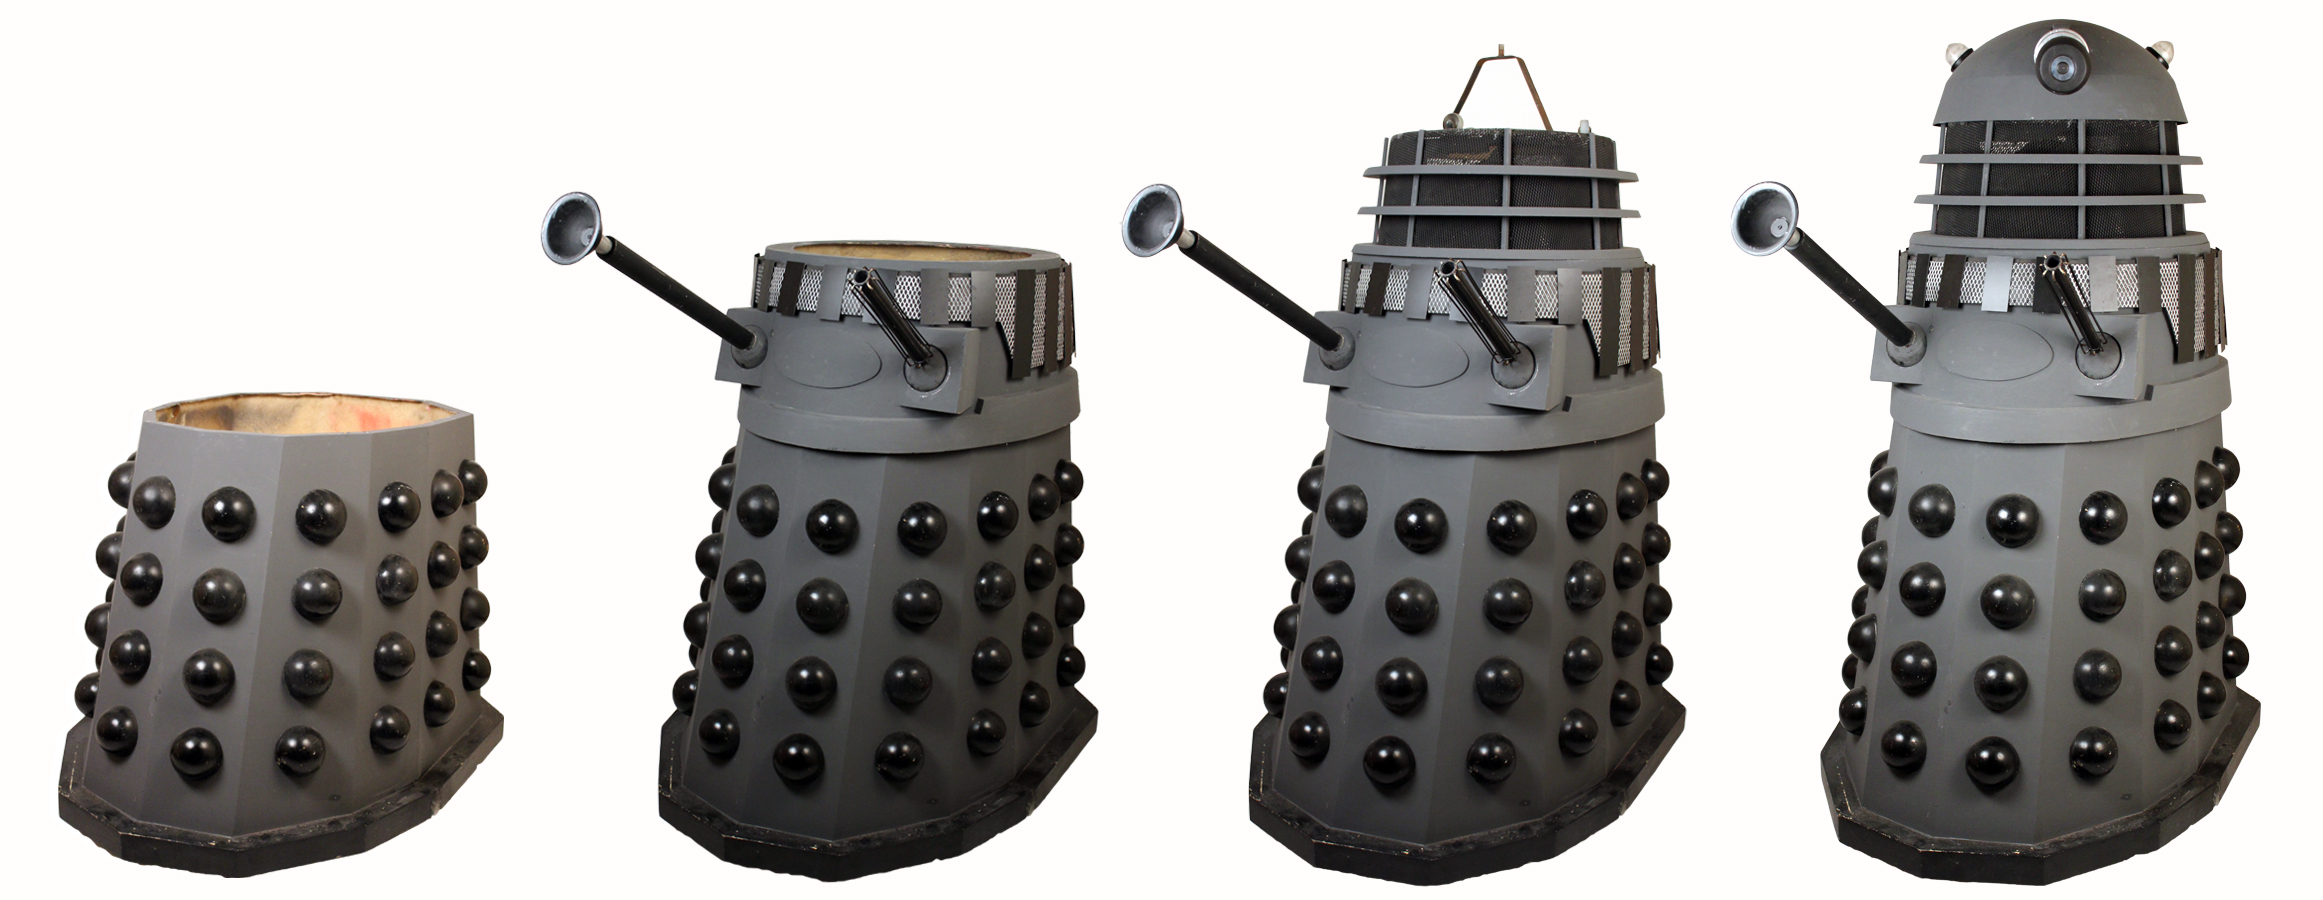 Original screen used dalek used in the production of Doctor Who